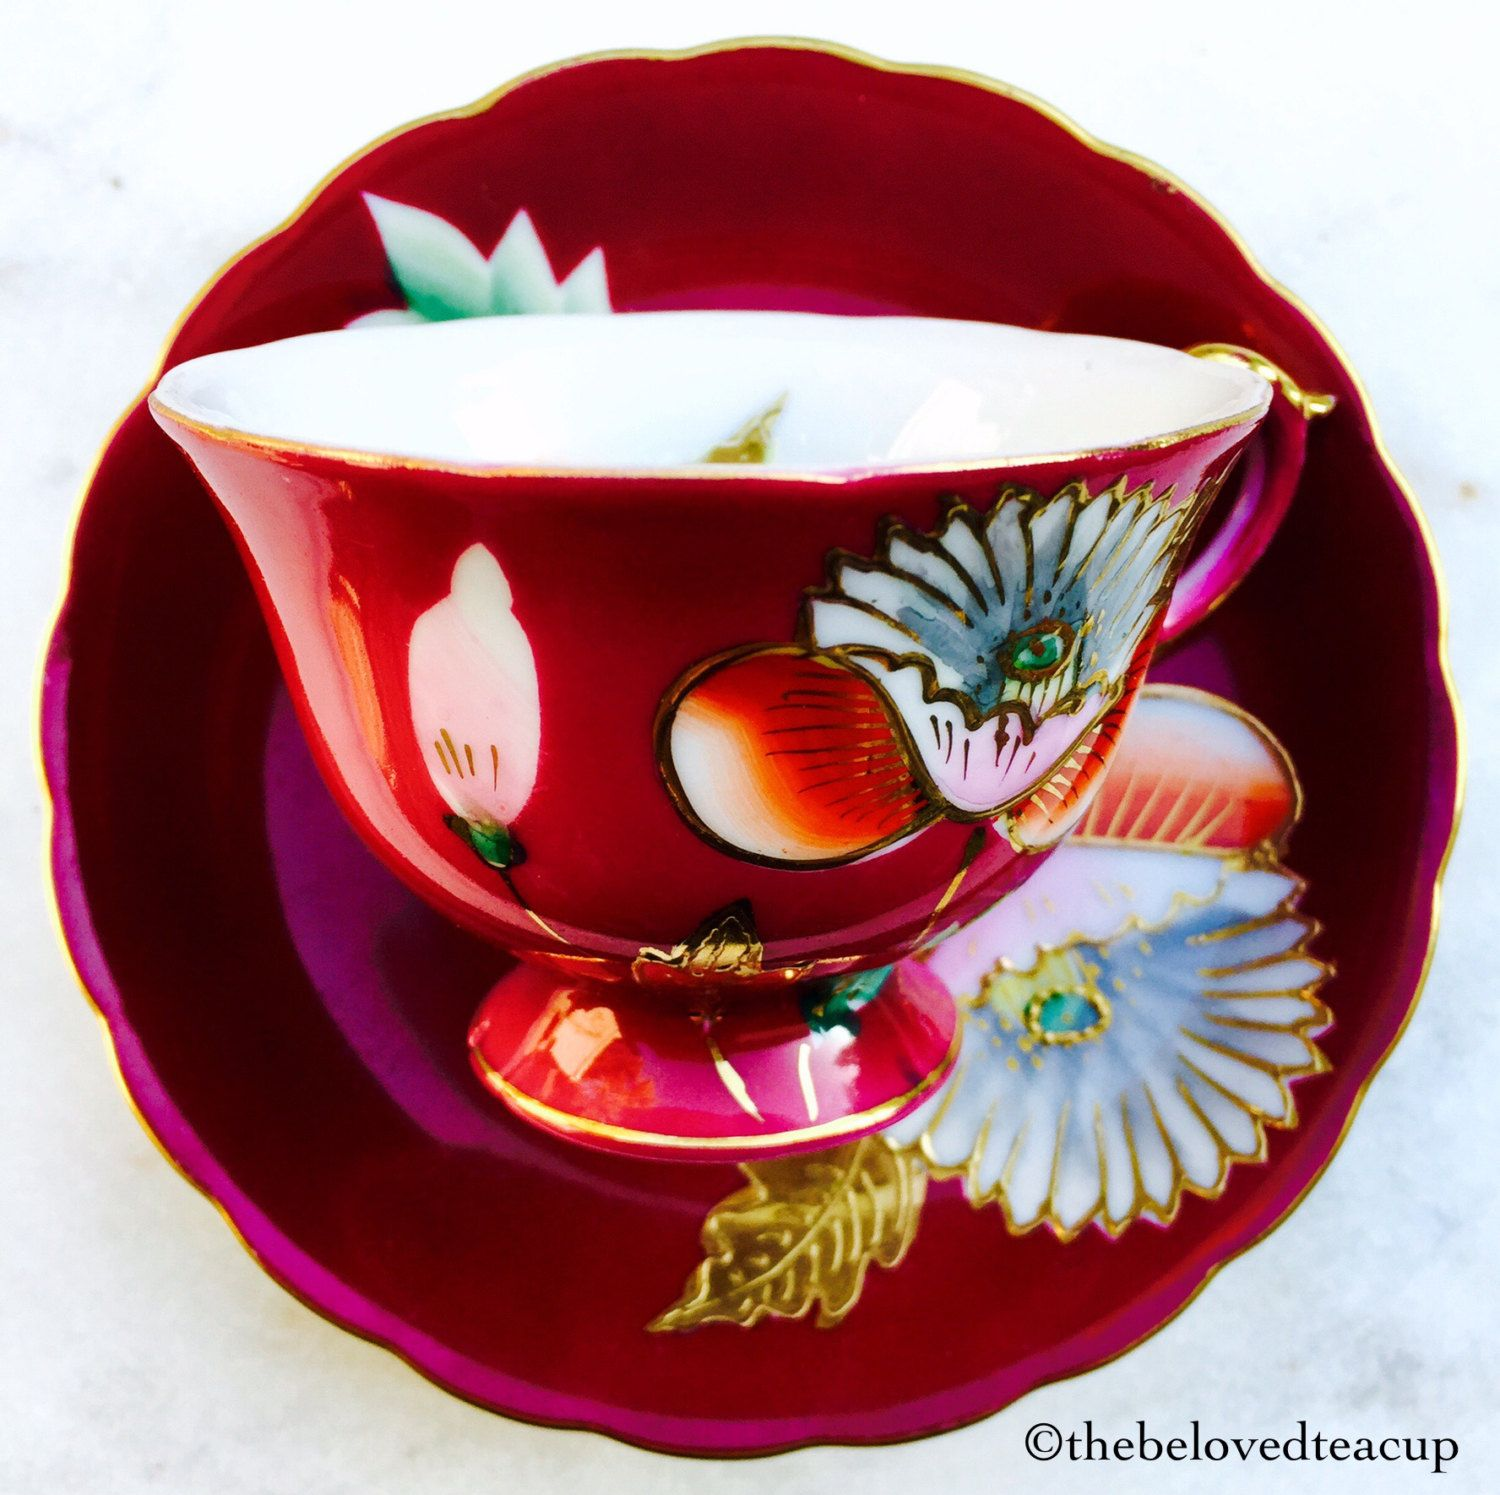 Royal albert bone china tea cup amp saucer winsome pattern ebay - Occupied Japan Trimont Ruby Red Floral Demitasse Teacup And Saucer